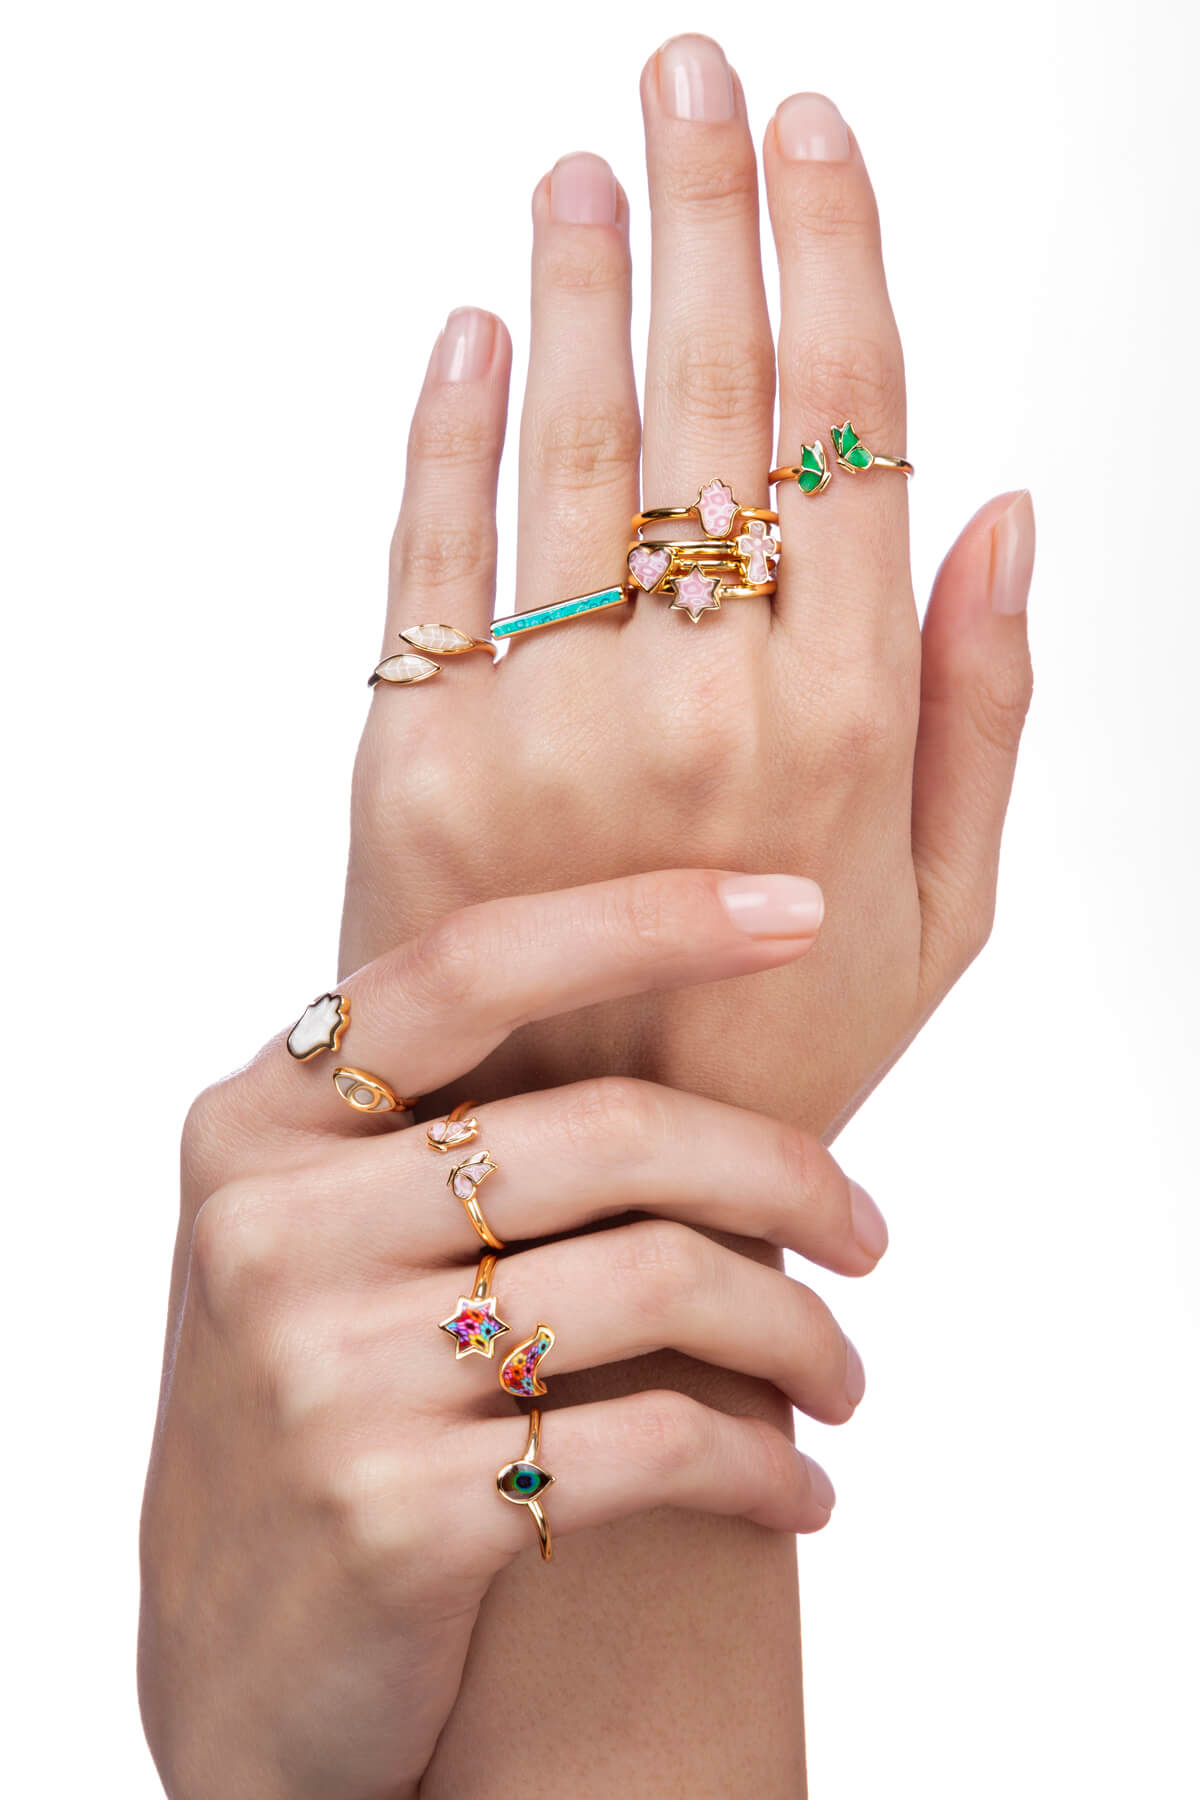 Silver and vermeil rings by Adina Plastelina jewelry